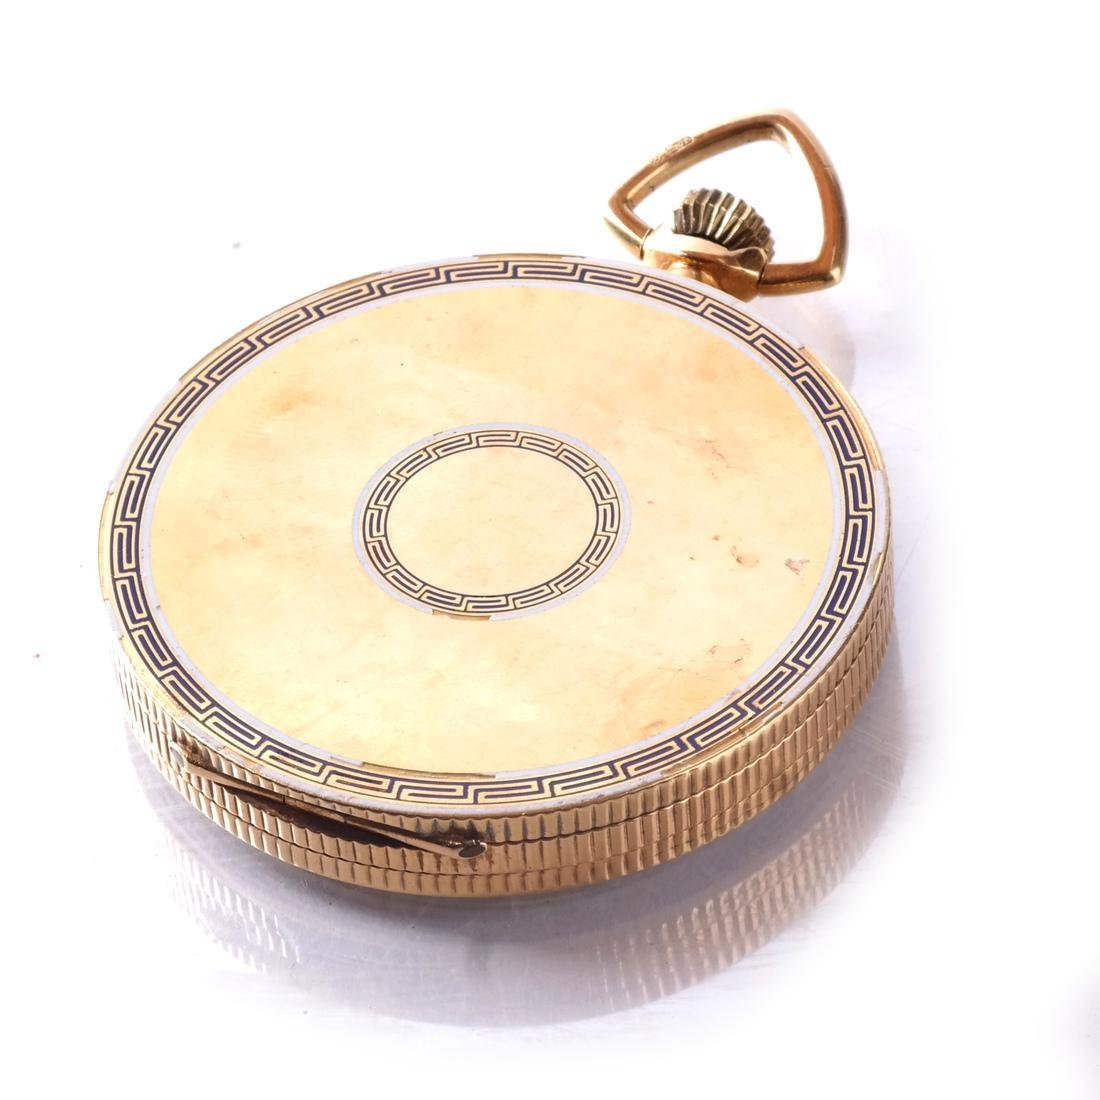 18k Pocket Watch, Open-Face - 4